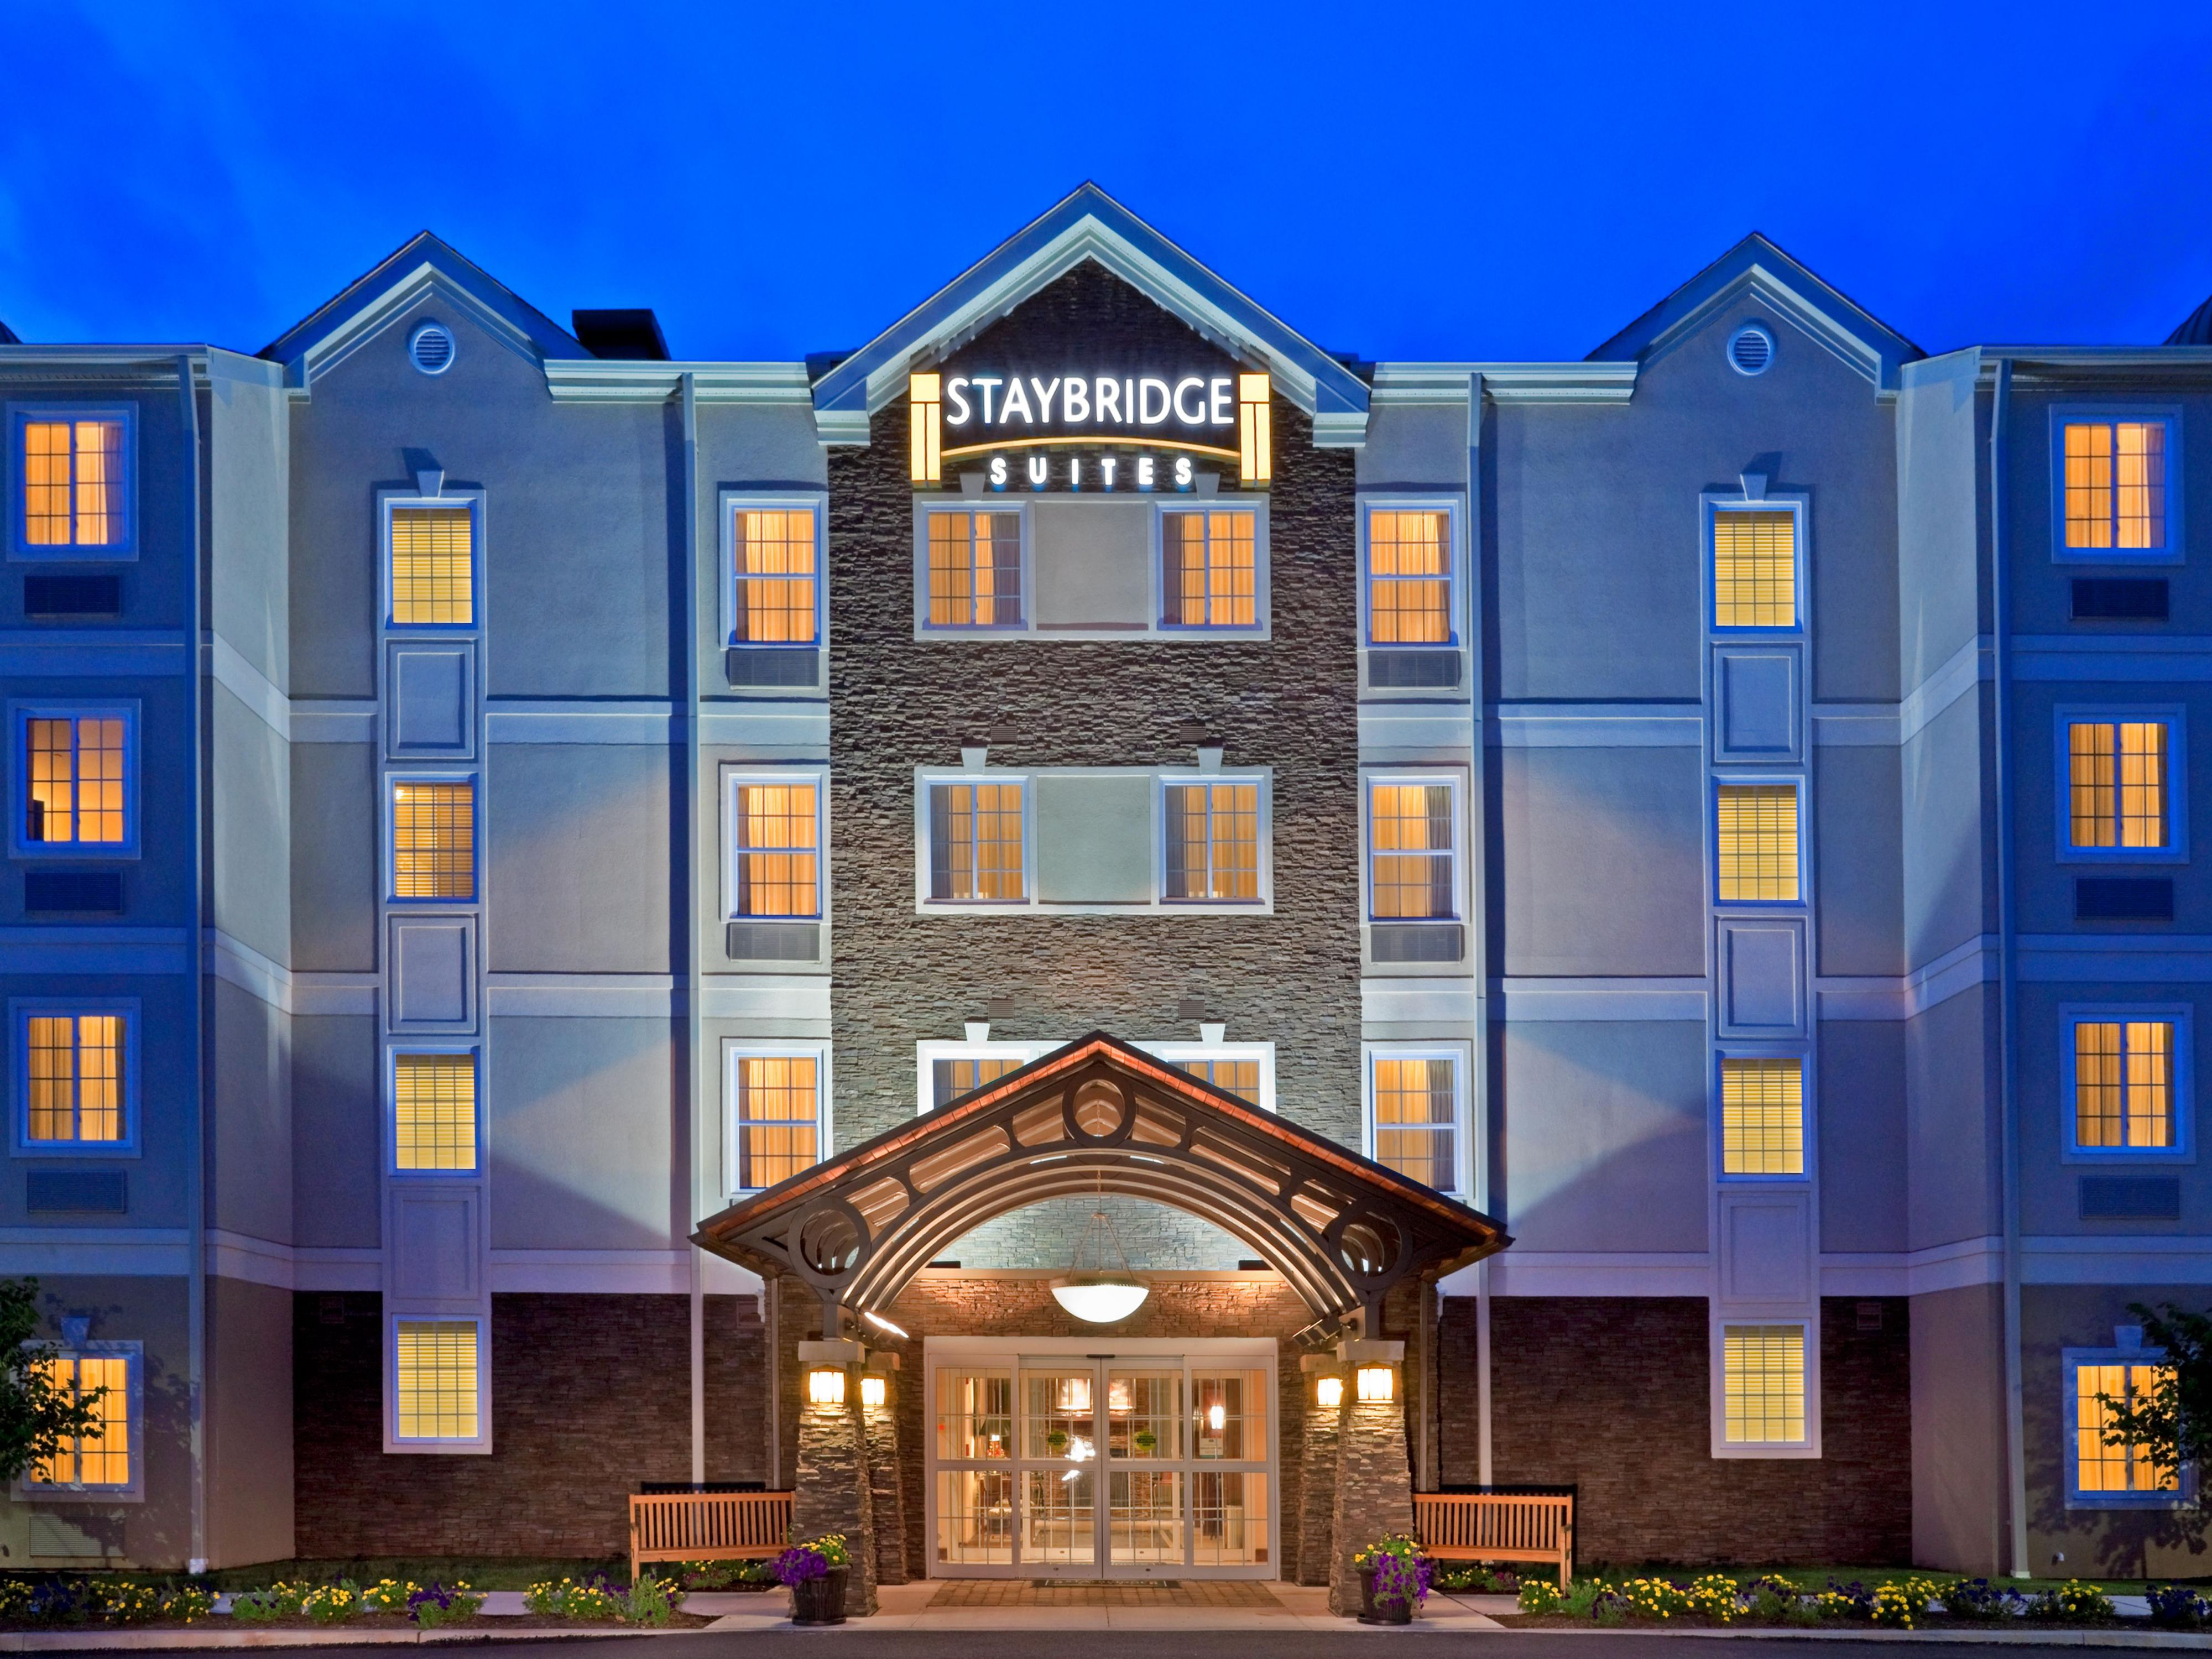 Royersford Hotels Staybridge Suites Philadelphia Valley Forge 422 Extended Stay Hotel In Pennsylvania